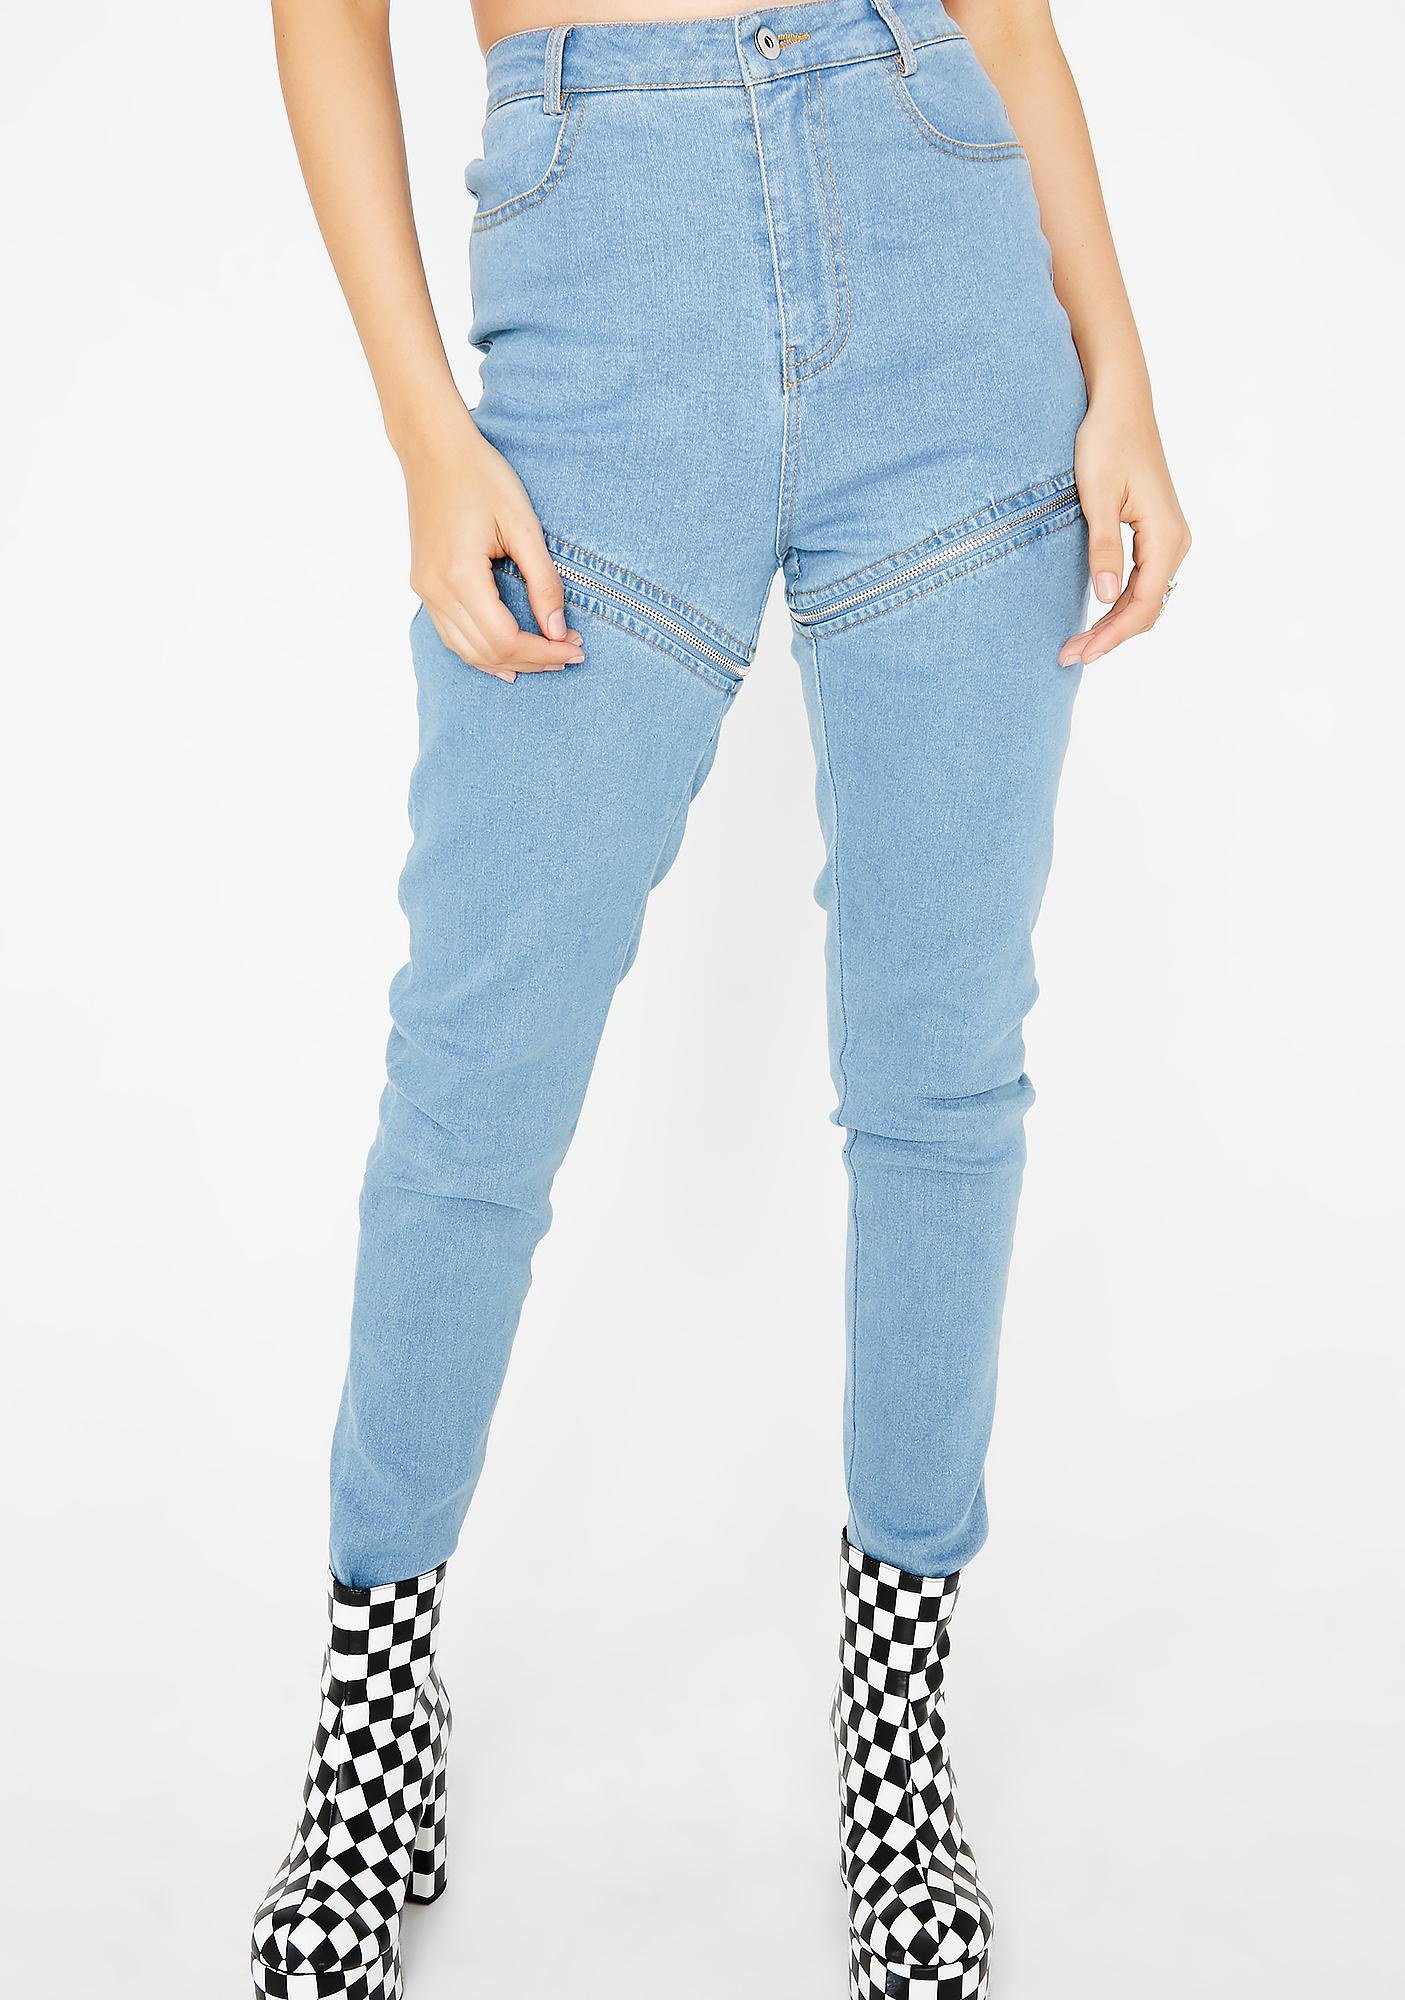 Either Way Zip Jeans